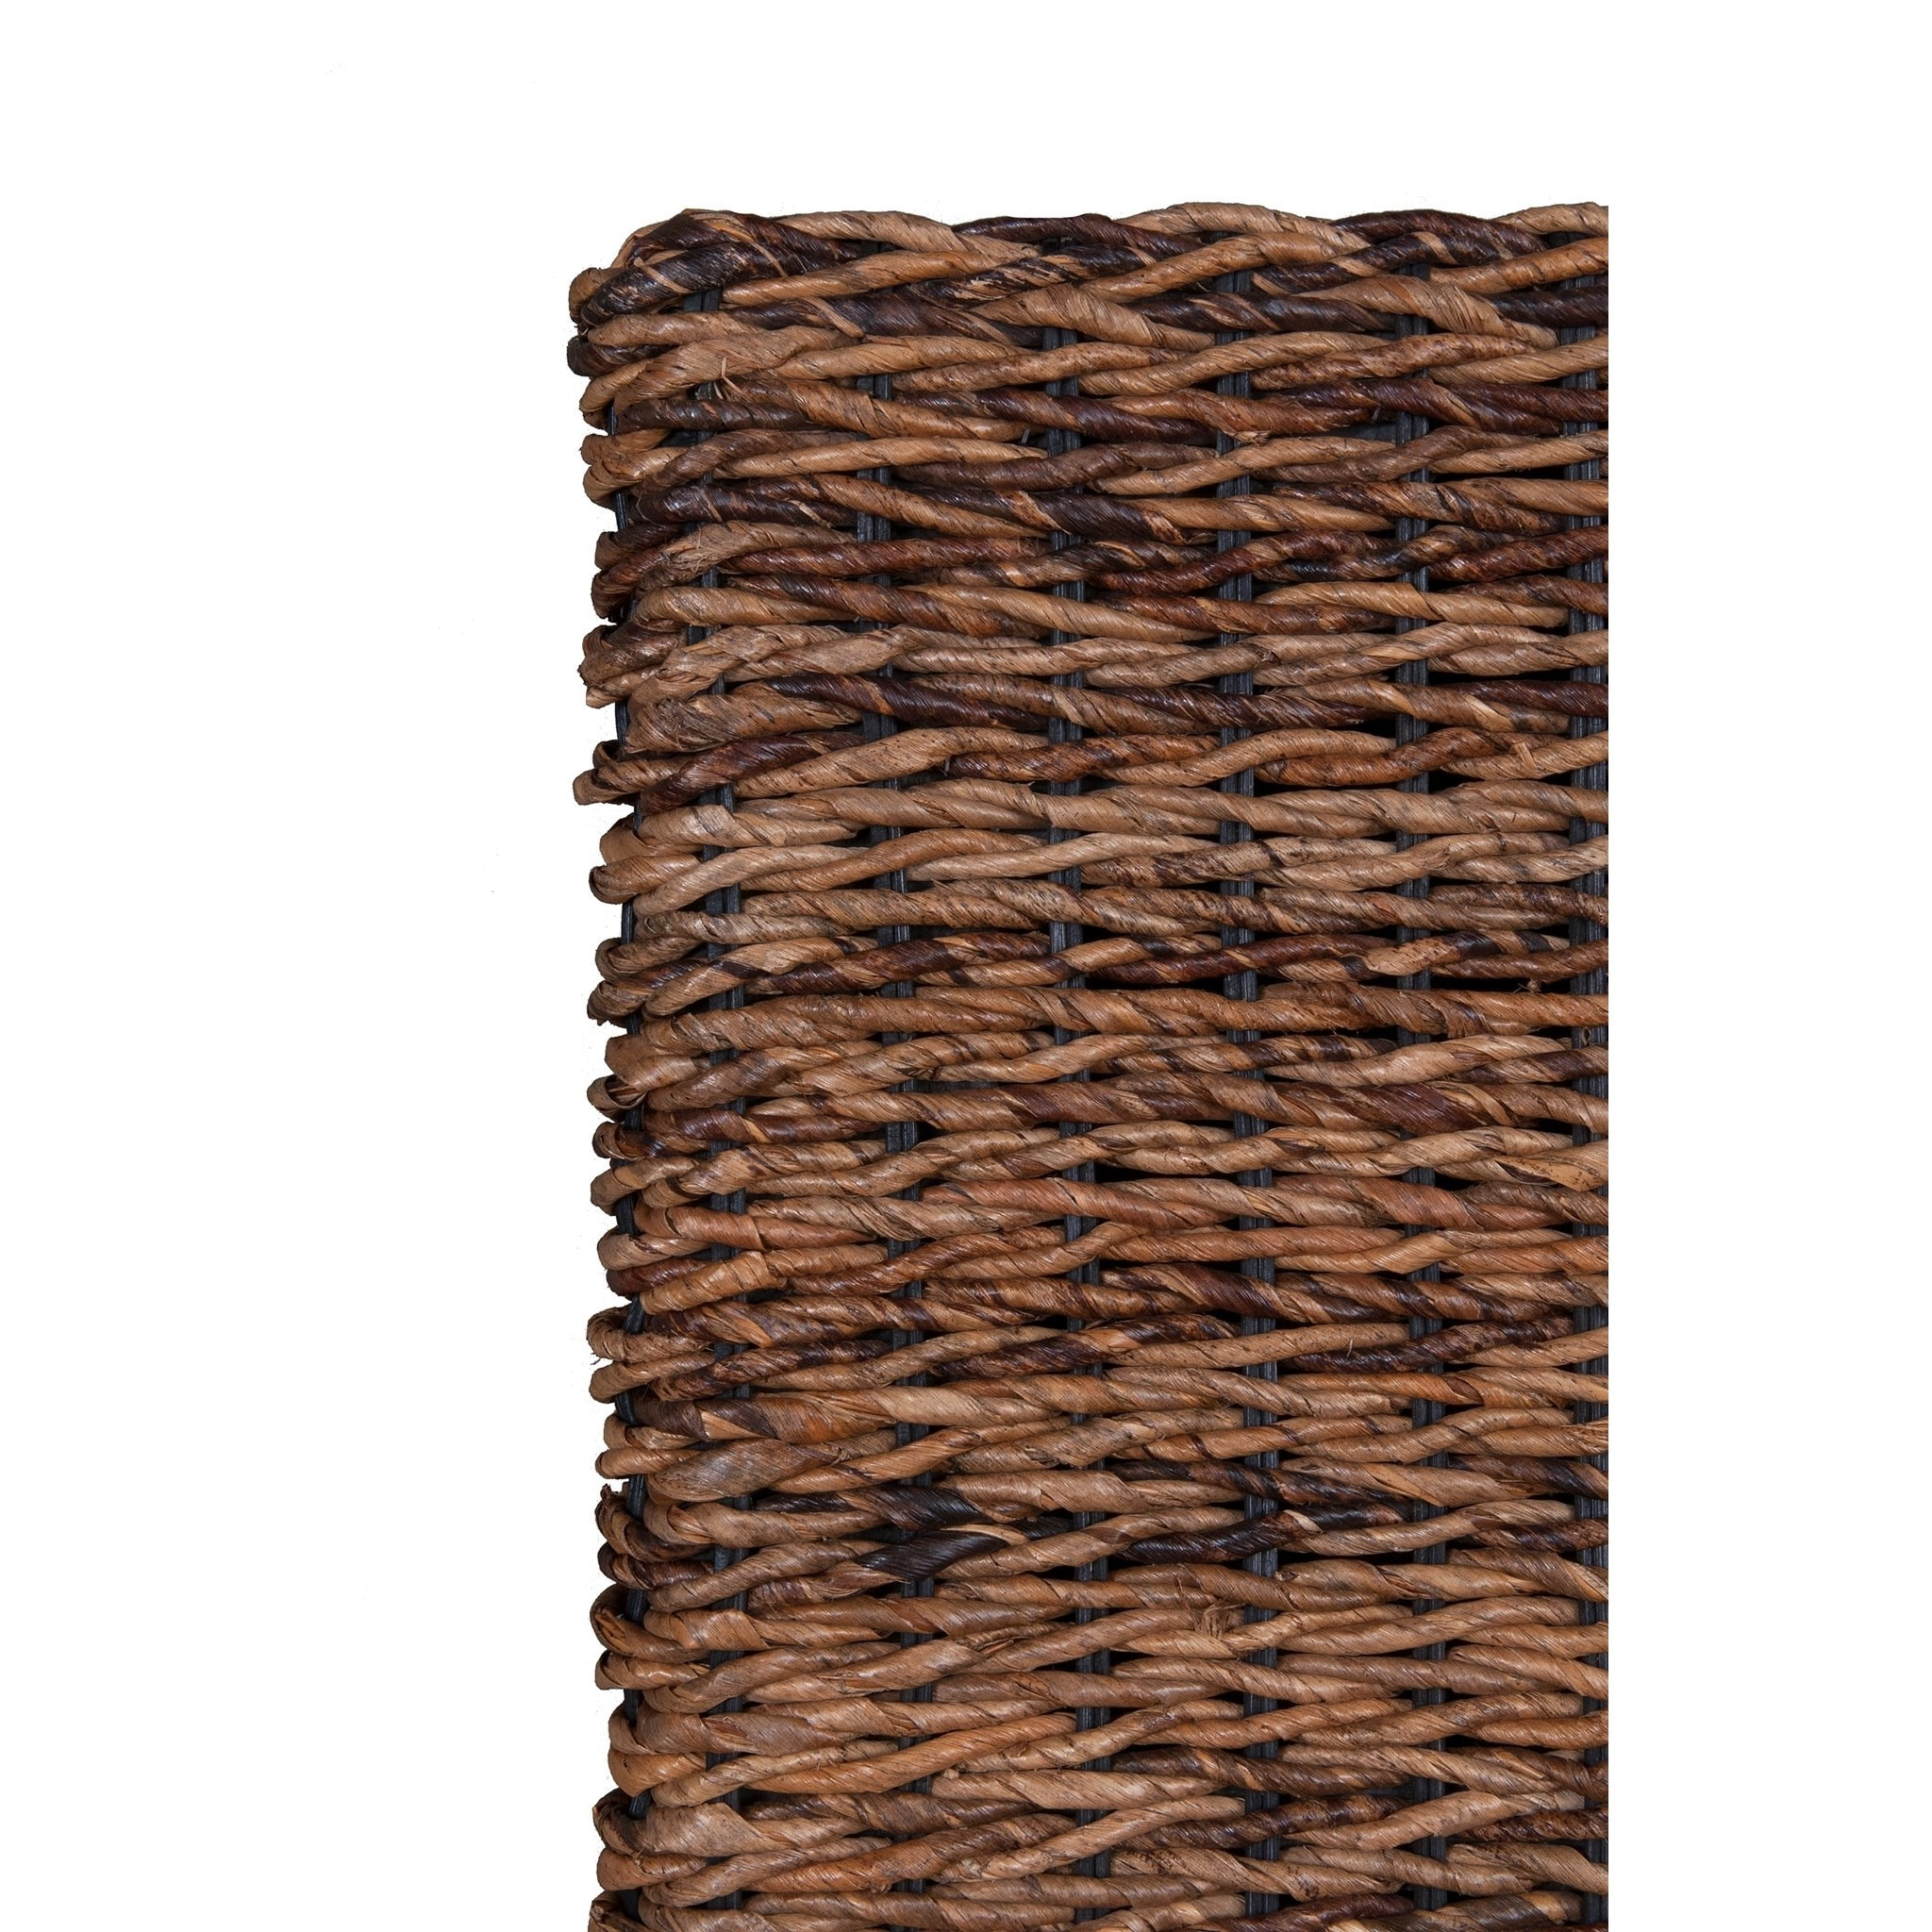 Abaca Mattress East At Main S Meticulously Woven Brown Abaca Weave Headboard